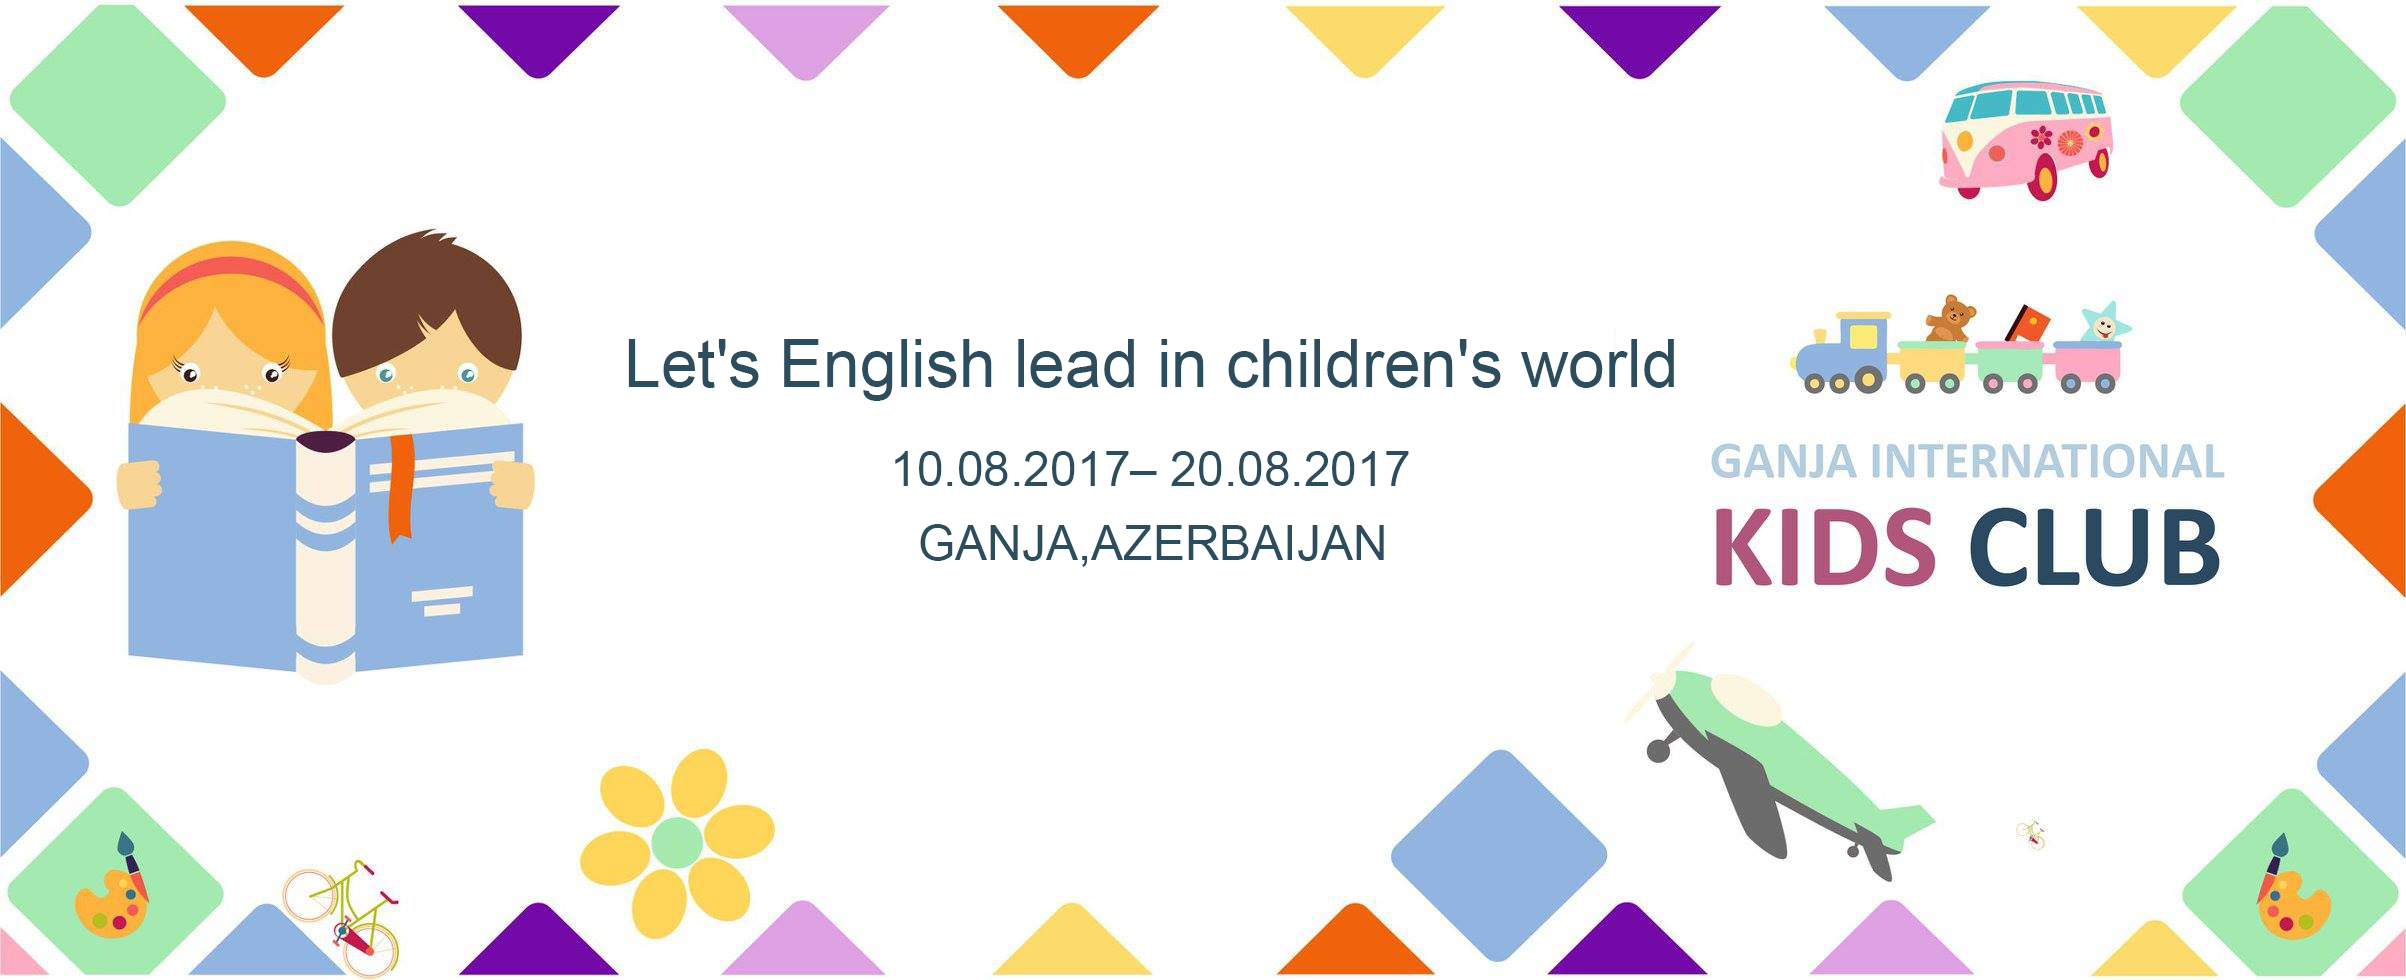 volunteer project: Let's English lead in children's world photo 2